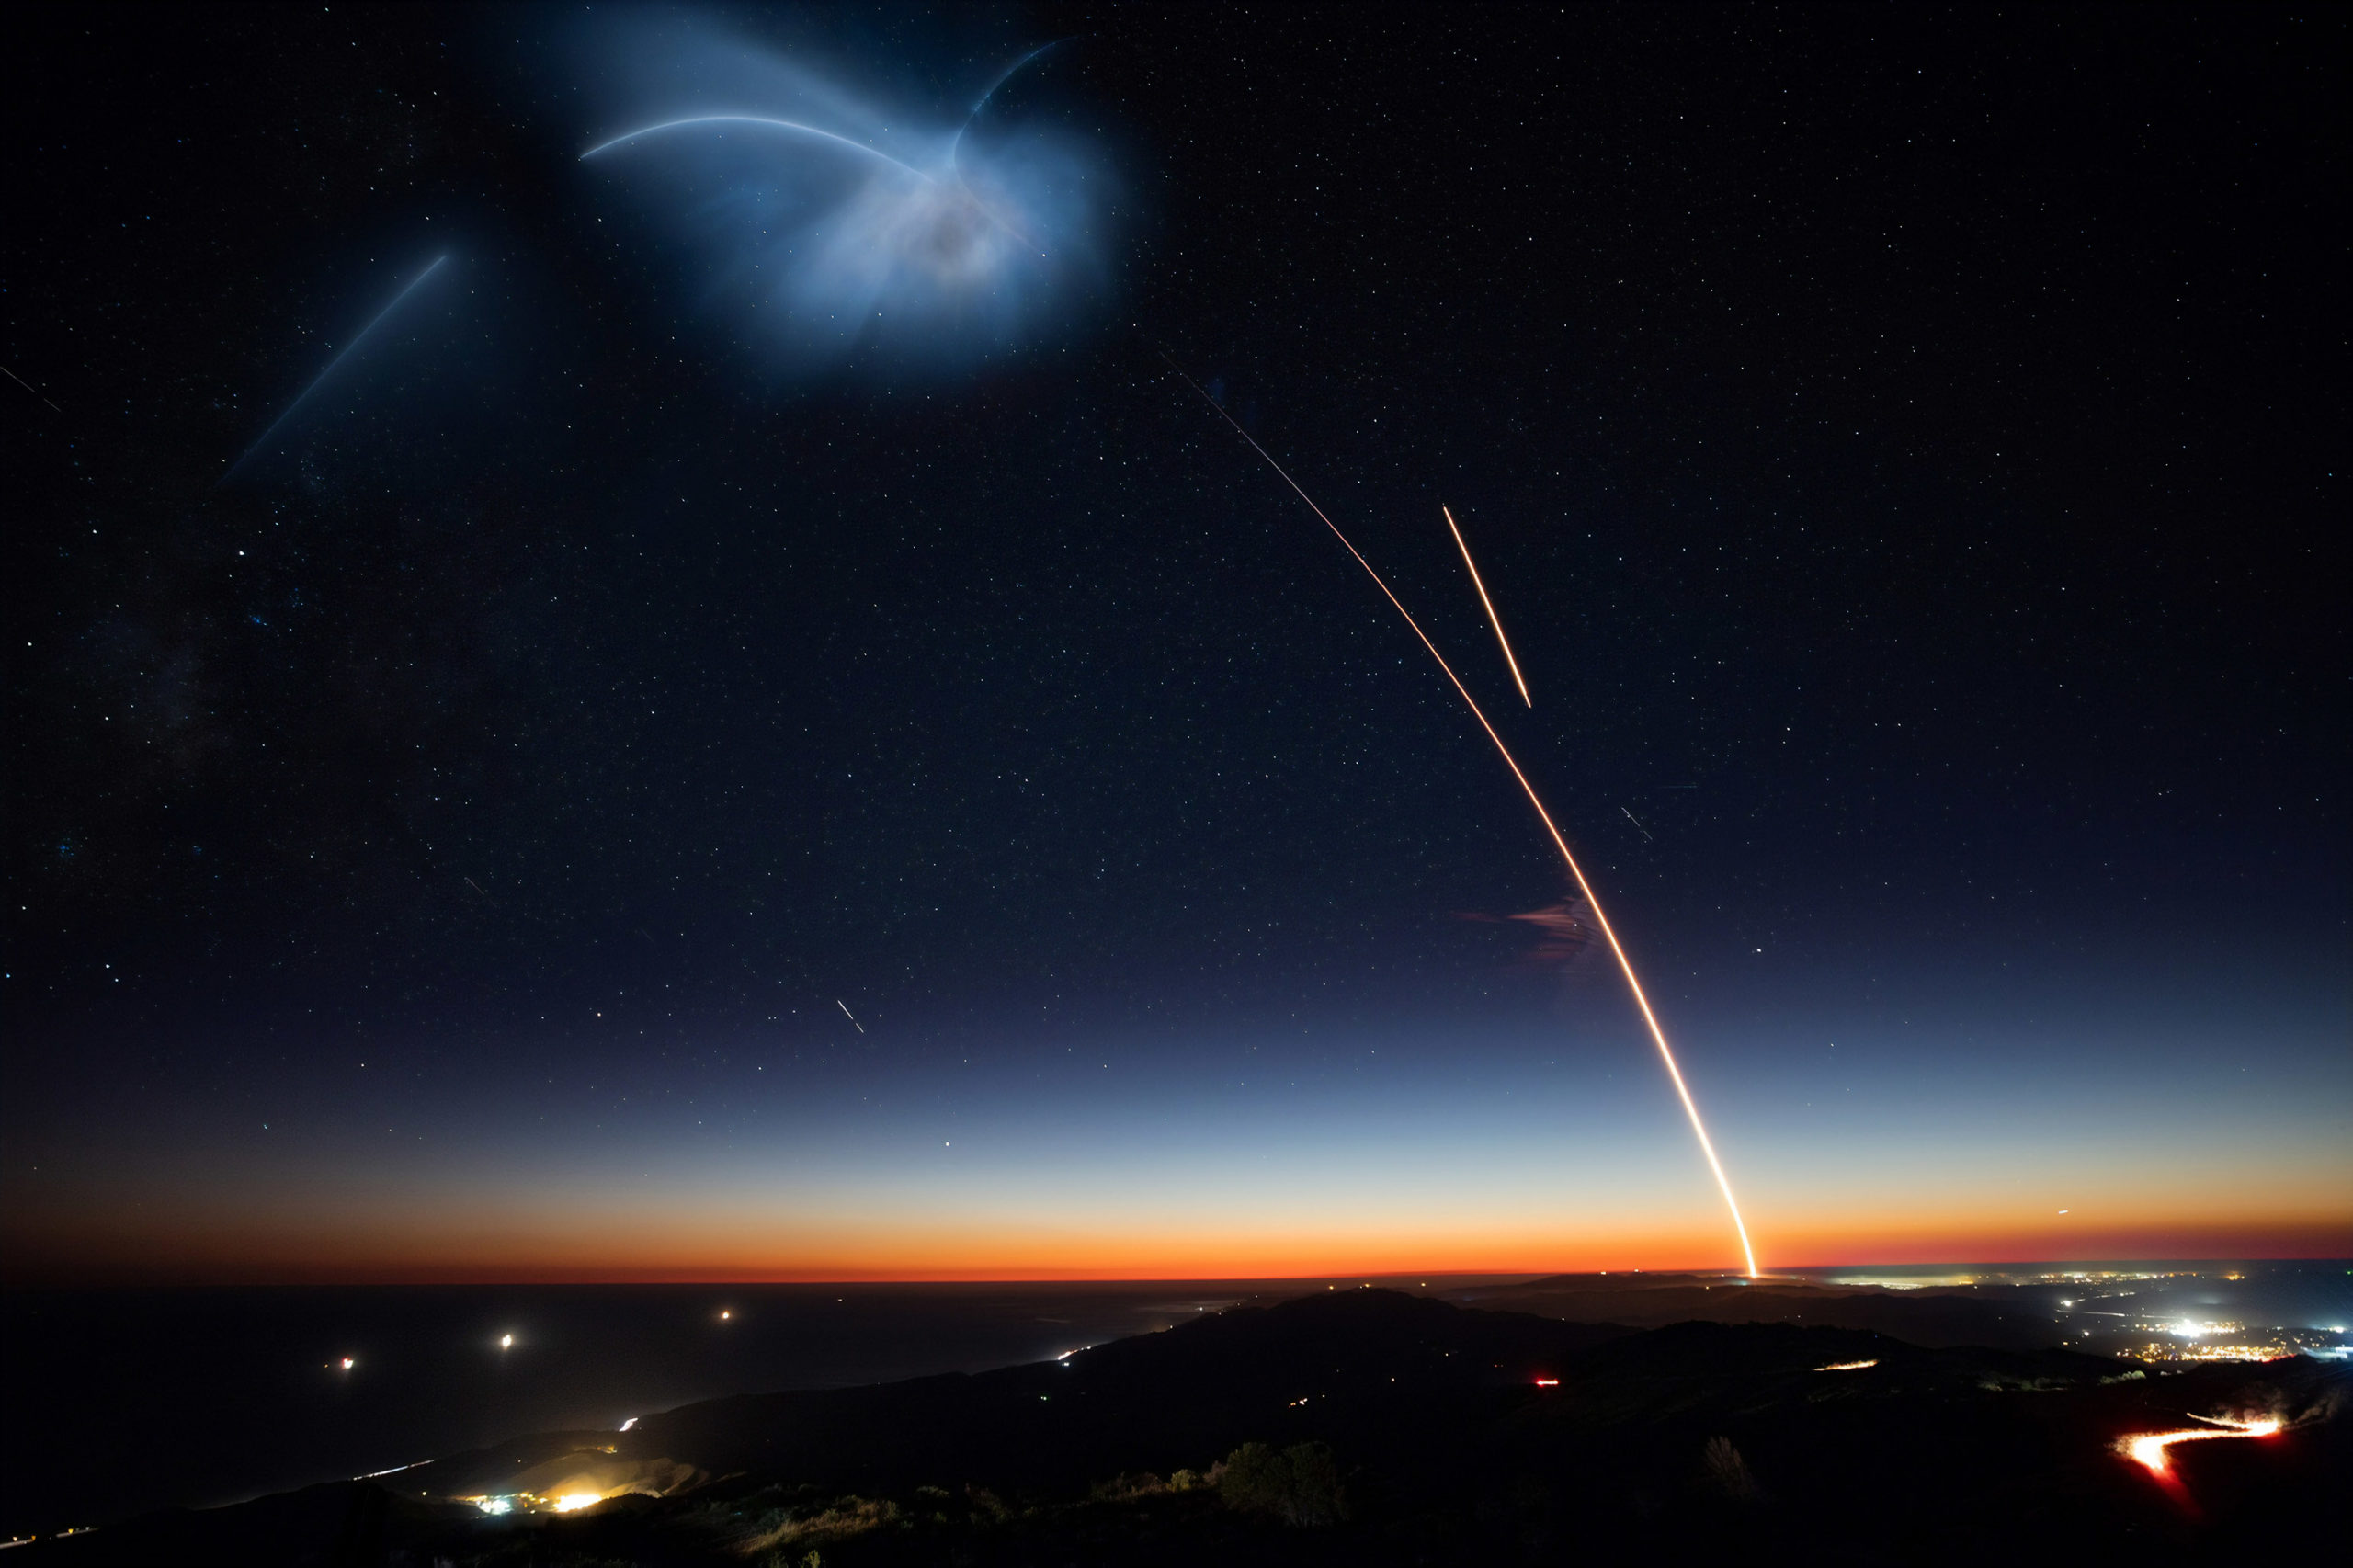 SpaceX Falcon 9 Launch Photo by SpaceX